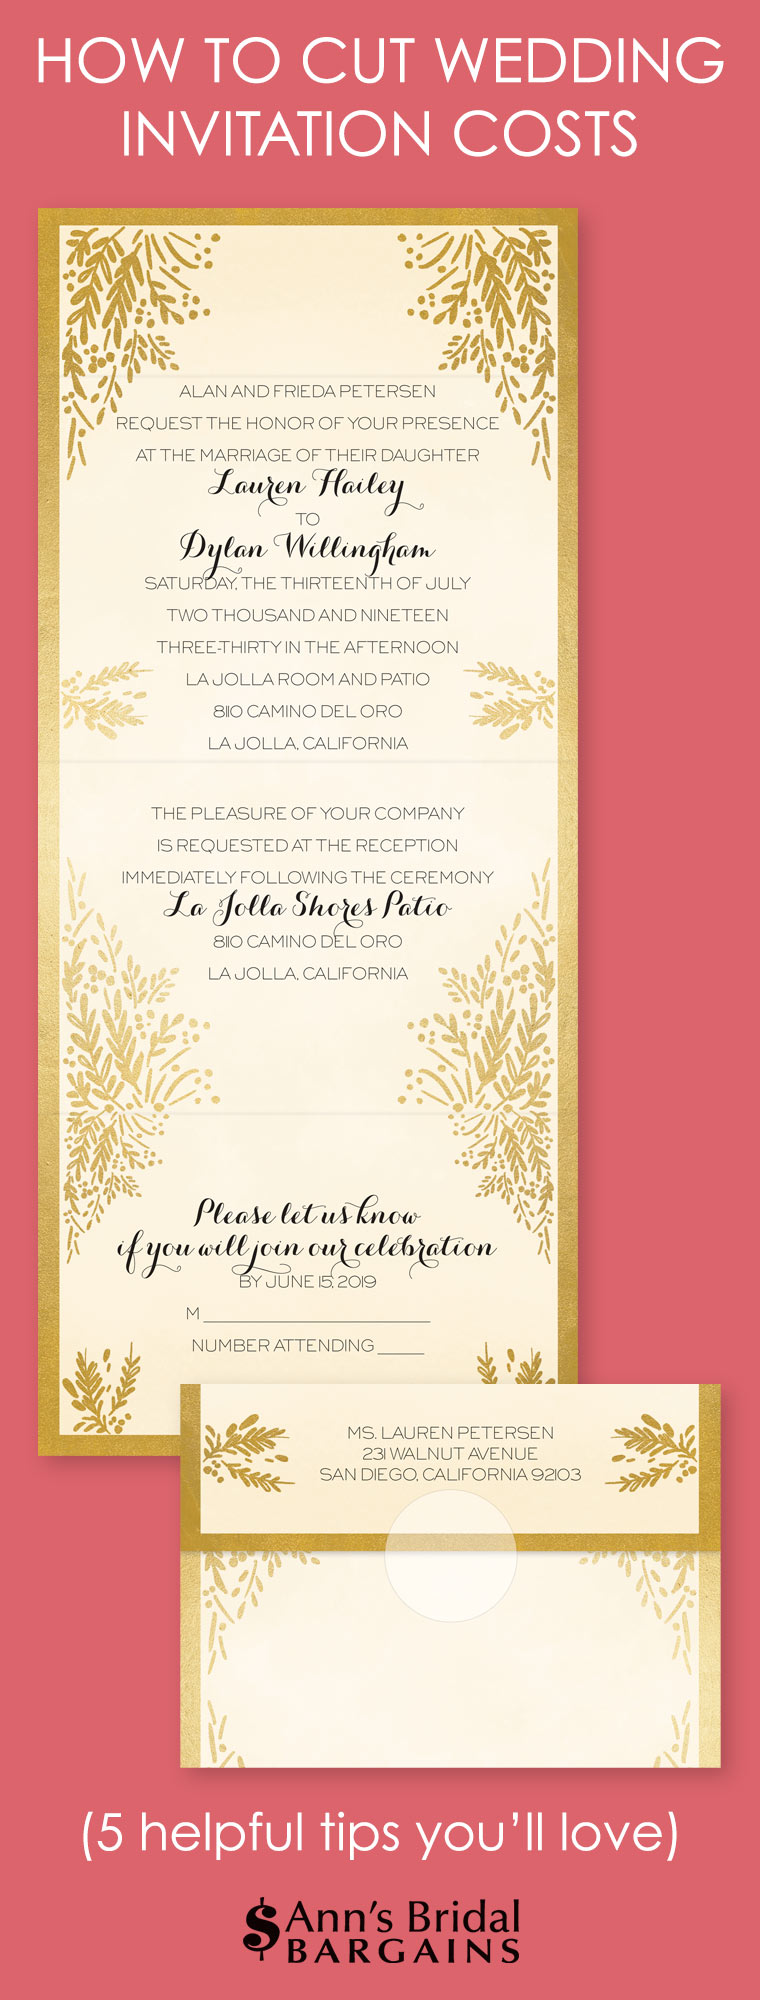 How to Cut Wedding Invitation Costs | Ann\'s Bridal Bargains